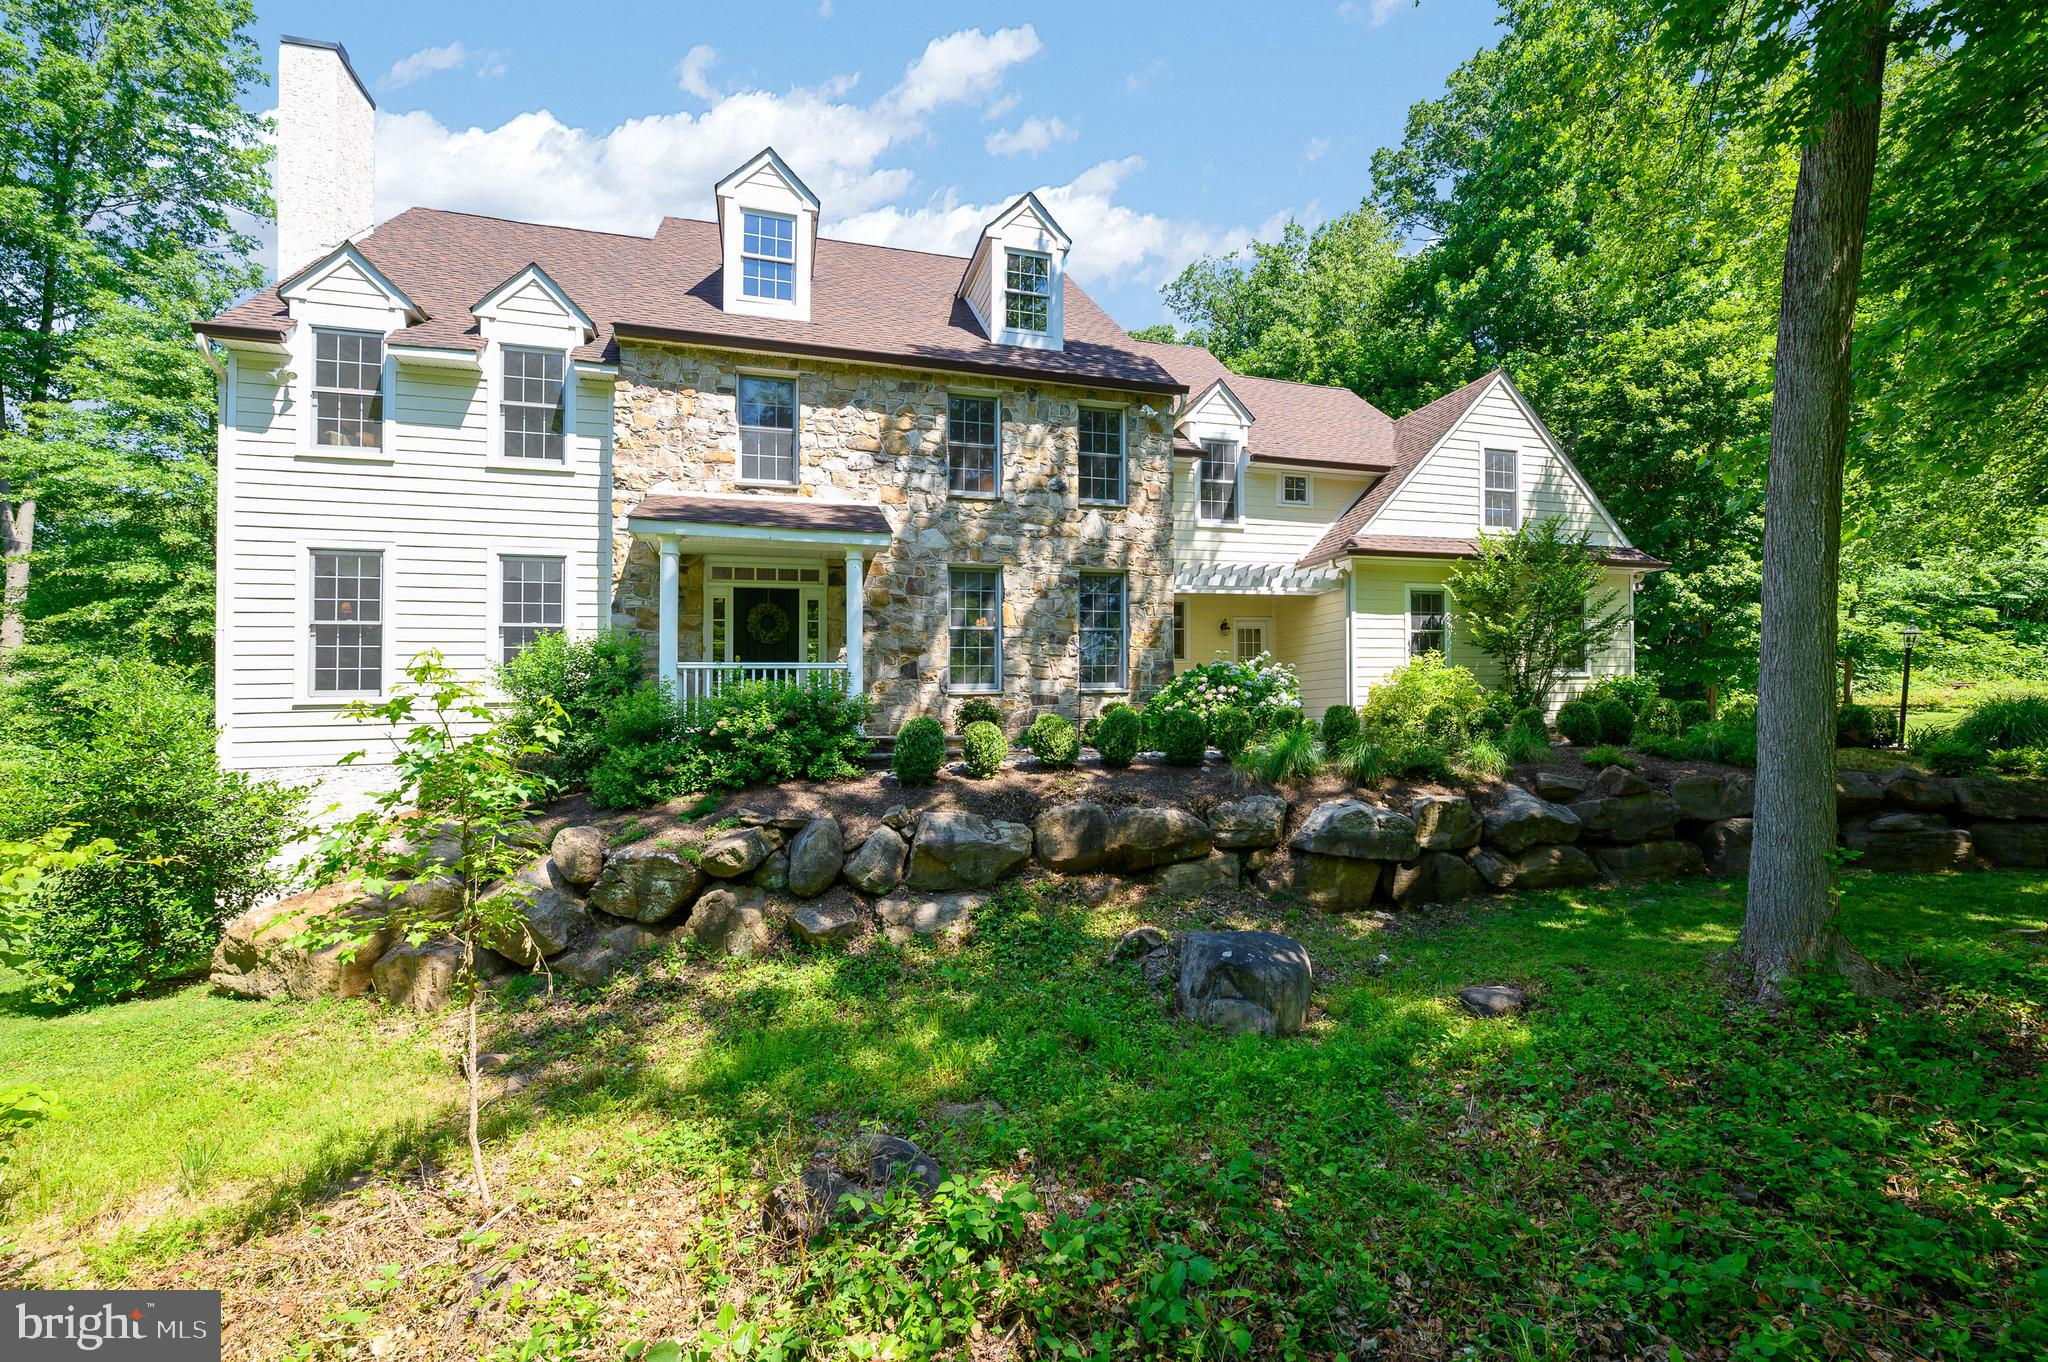 Welcome to 308 Iven Avenue-a beautifully situated property in the heart of Radnor Township and a stone's throw to downtown Wayne. Set back from the street on approx. 1.39 acres, this 5 Bedroom, 5.5 Bath Colonial style home provides ALL 5 Bedrooms on the 2nd floor. The façade is lovely with Hardi-Board and stone. Enjoy the gracious generously sized rooms, high ceilings, new carpeting, open floorplan, a back staircase, finished Lower Level, 3 Car Garage, Composite Decking overlooking the private rear yard and so much more. Inside one will discover a flexible floor plan that flows for easy living and entertaining. The first floor includes an inviting 2 story Foyer, a light filled Living Room with gas fireplace, convenient Office tucked in the rear of the home and the formal Dining Room is adjacent to the Kitchen. The heart of the home is the open layout space among the Kitchen and Family Room. A bright Kitchen with crisp white cabinetry, dark granite counters, newer stainless-steel appliances, center island and a large Breakfast Room with sliders to the deck is both spacious and comfortable. The Family Room with gas fireplace is a terrific room for watching TV, reading or playing games. Access to the 3-Car Garage, Laundry Room and Powder Room complete this level.  Upstairs boasts 5 Bedrooms and 4 Full Baths. A landing at the top of the main stairs includes built-in cabinetry and shelving. The Primary Suite is quite spacious with a Bonus Room which may be another home office, sitting or changing area, a walk-in closet and a Bathroom which provides white cabinetry and fixtures, a corner soaking tub and stall shower. Additionally, a Princess Suite offers a full en-suite Bath with a stall shower. Two additional Bedrooms share a hall full Bath with tub. The Junior Suite at the end of the hallway is dynamite space for sleeping and lounging with its full Bath and convenient access to the back staircase.  Don't miss the Lower Level with more finished living space, a Full Bathr